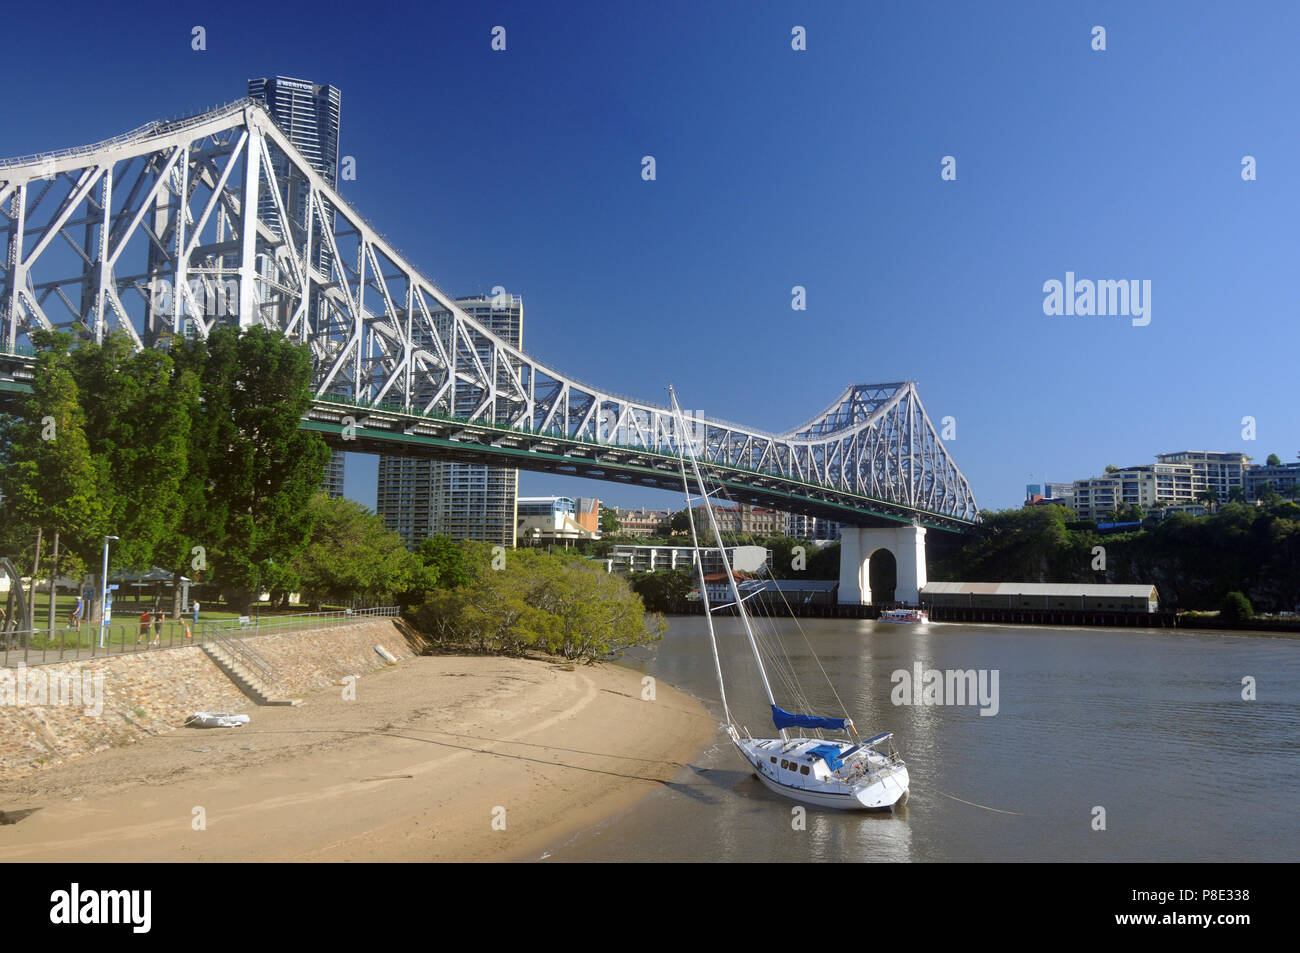 Yacht on beach at Kangaroo Point near the Story Bridge, Brisbane River, Queensland, Australia. NO PR or MR - Stock Image